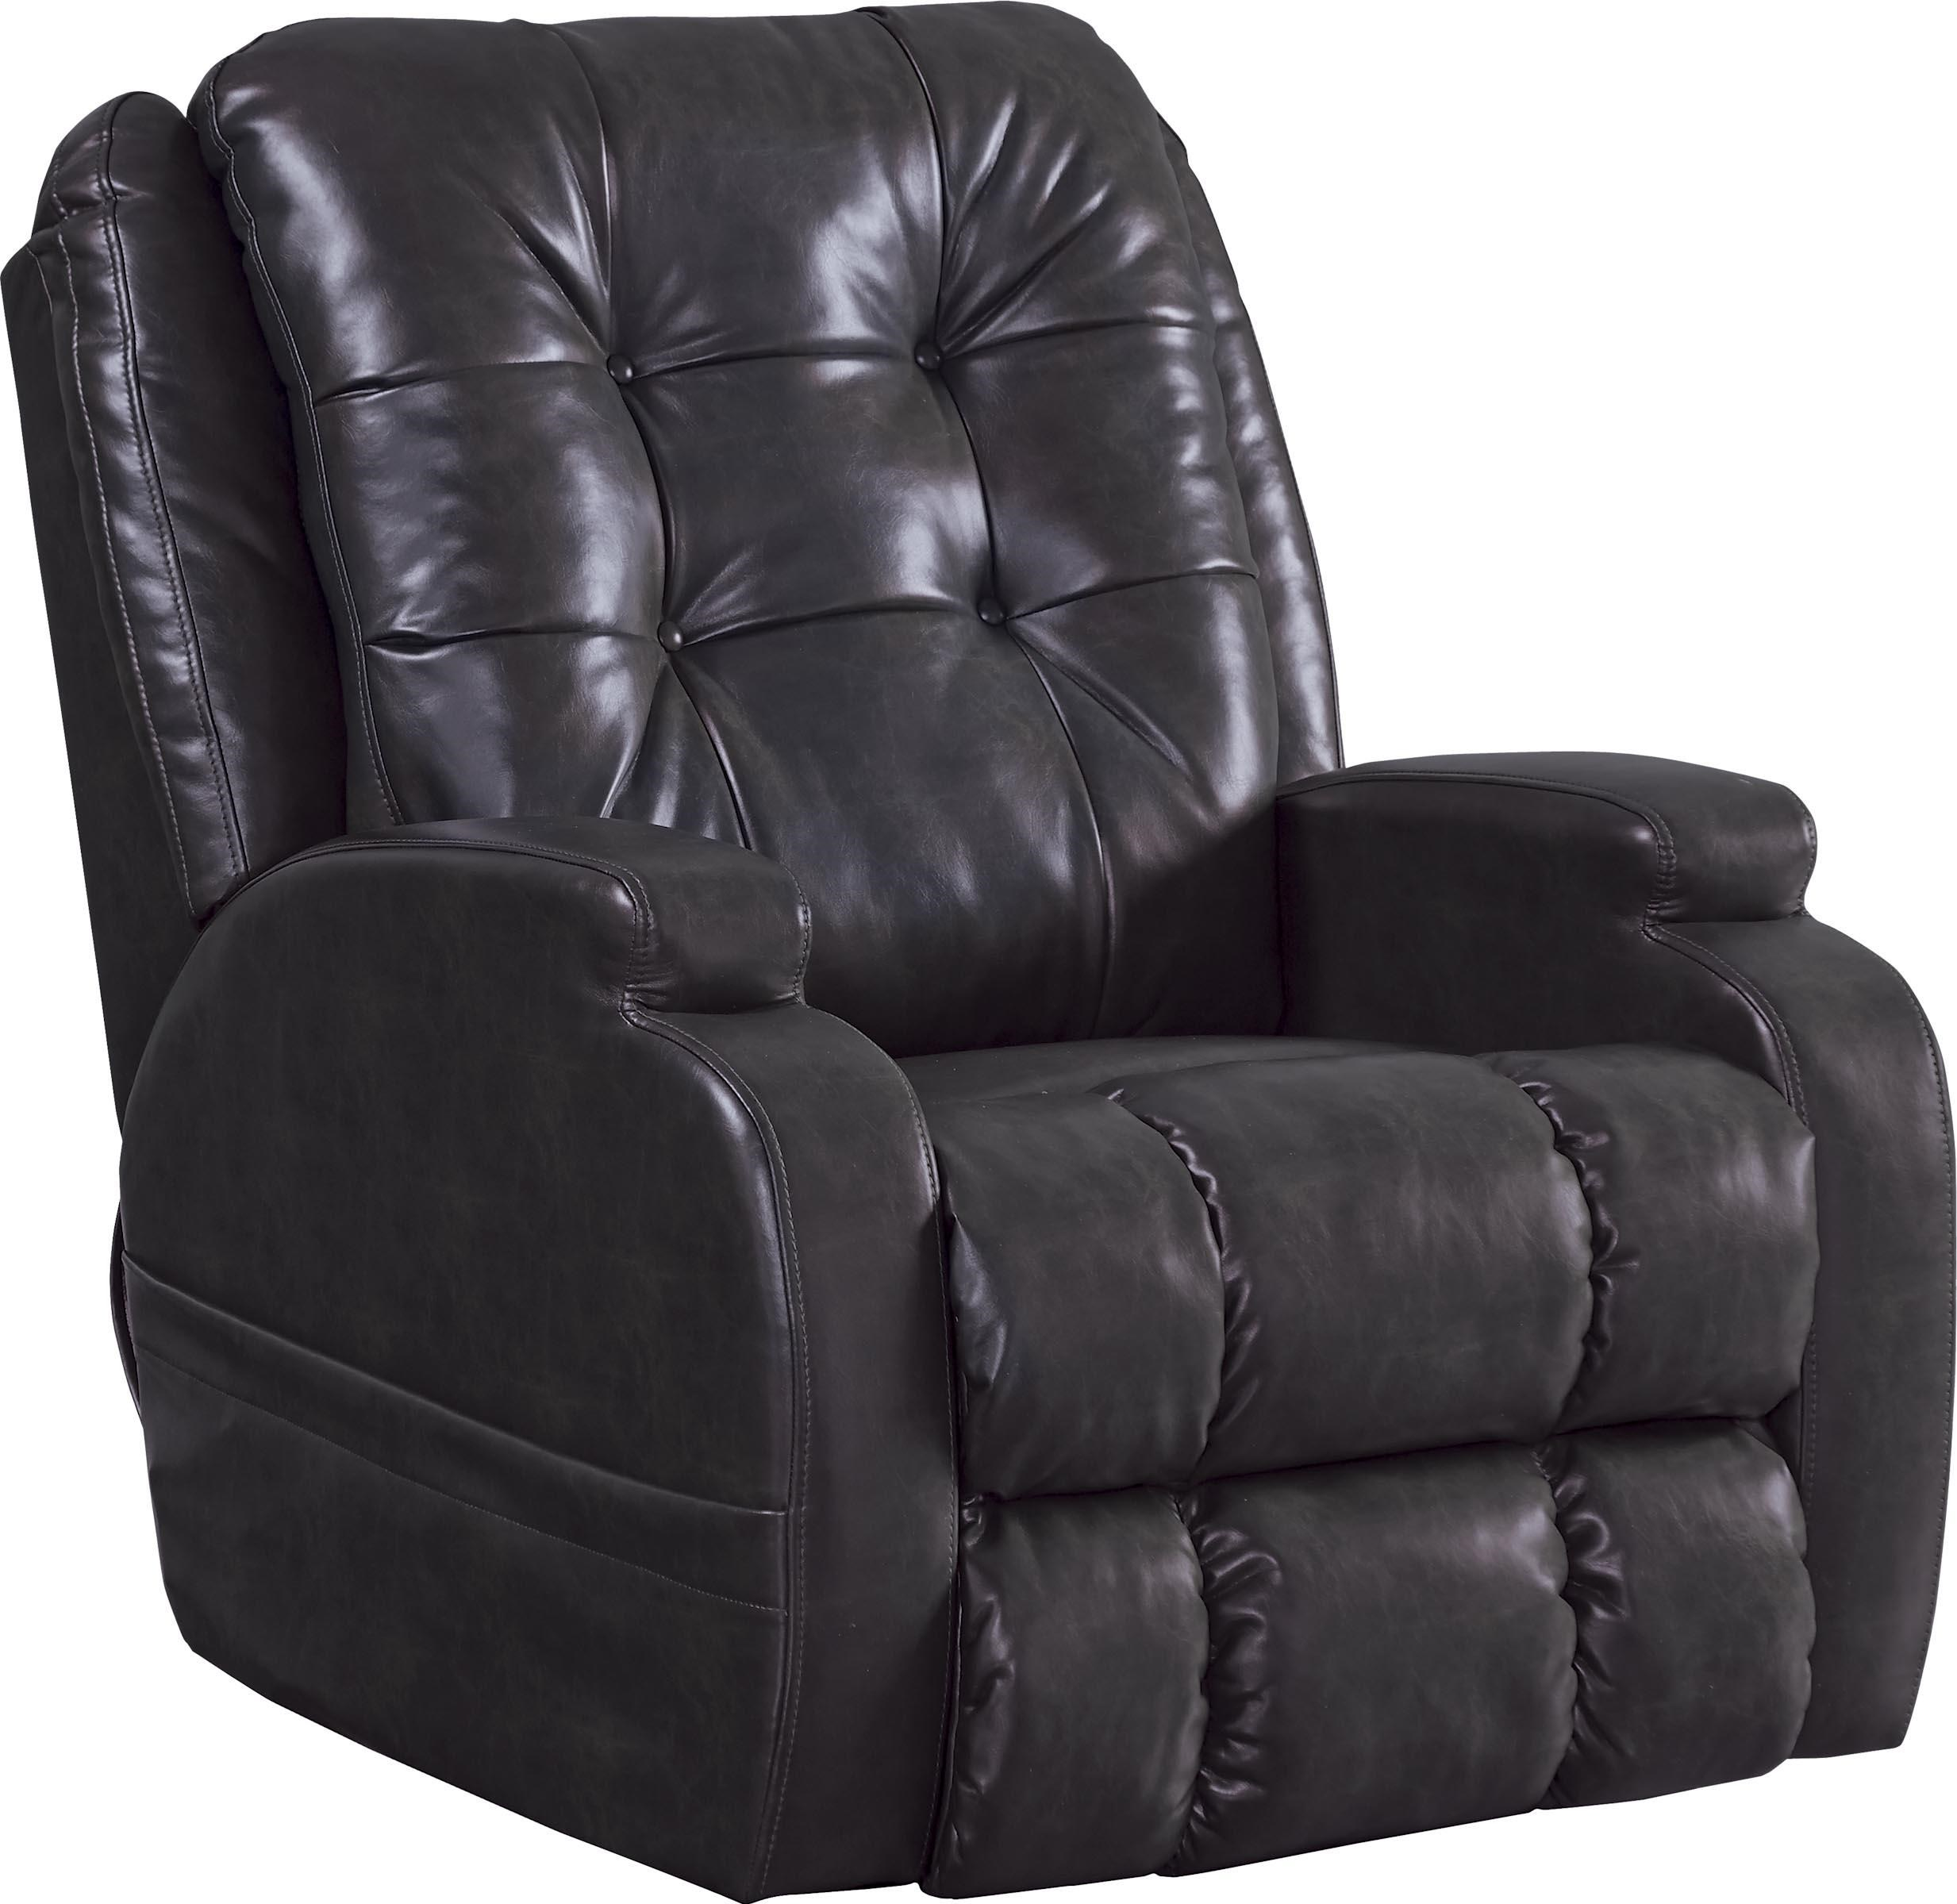 Catnapper Motion Chairs And ReclinersJenson Lay Flat Recliner ...